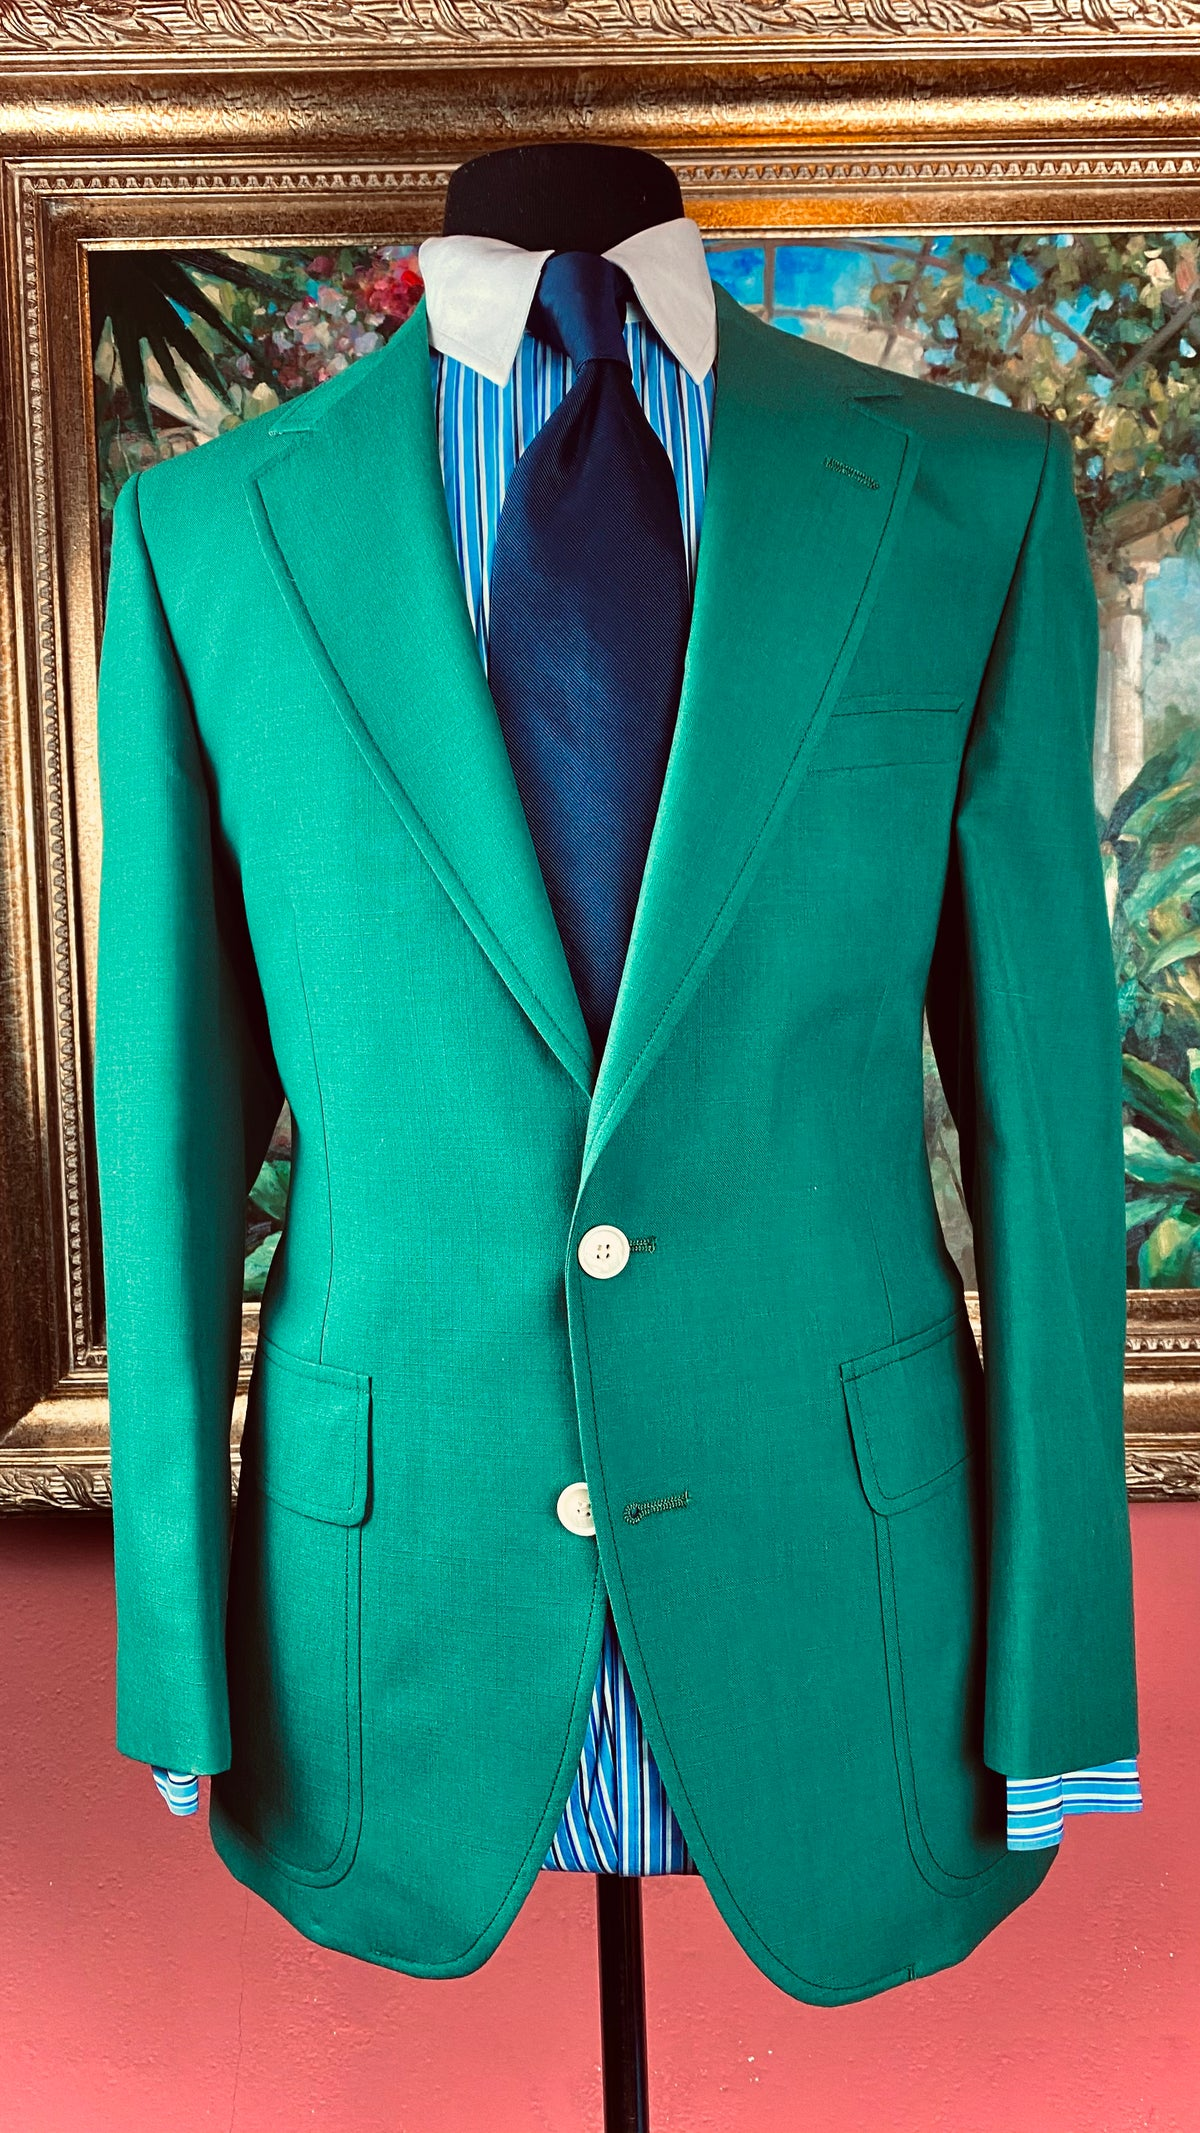 Image of VTG Green Jacket